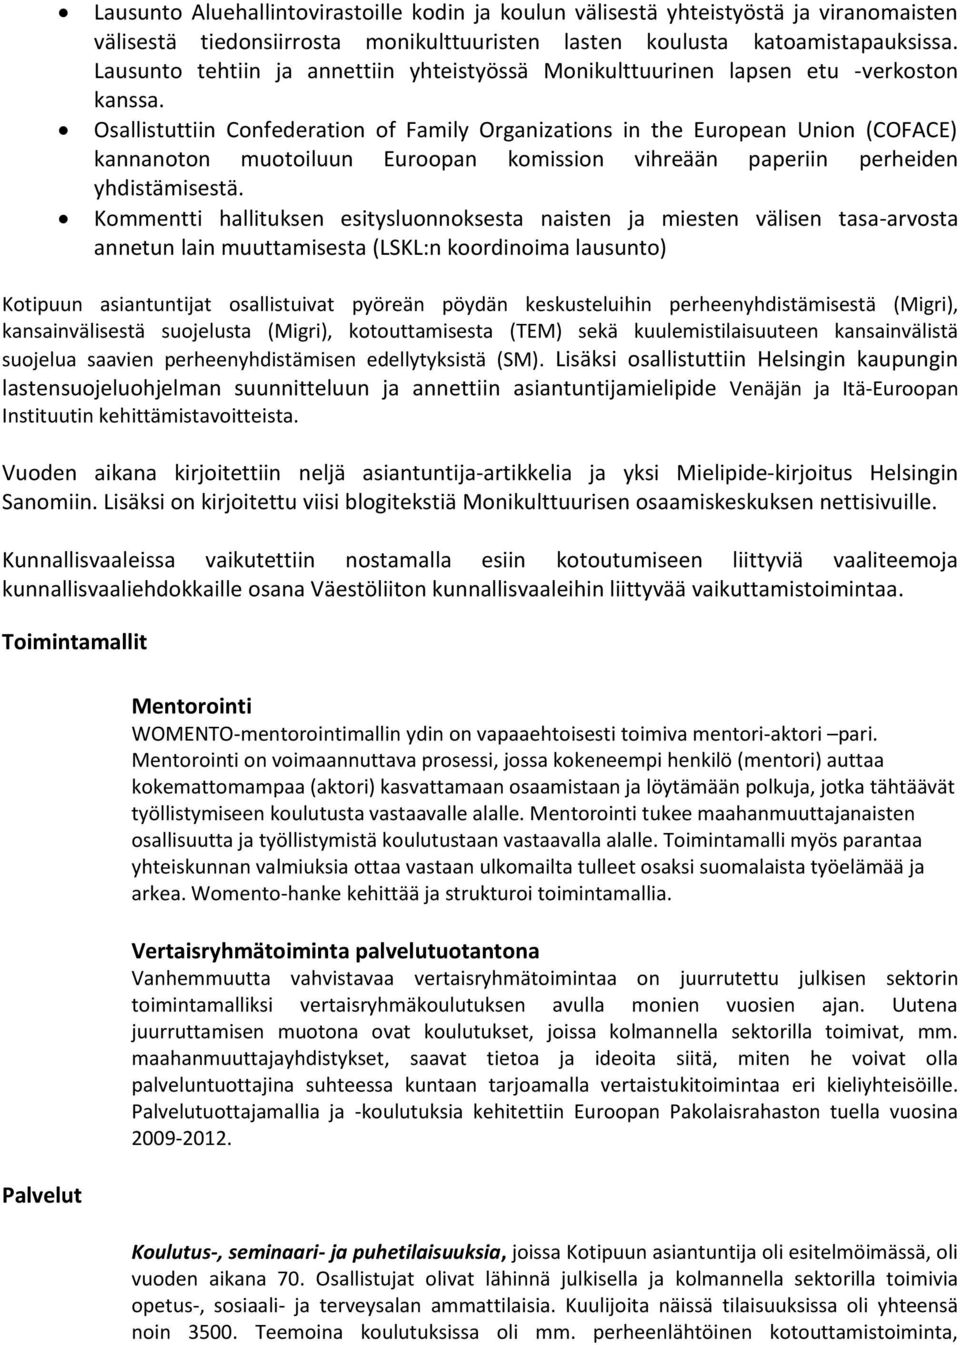 Osallistuttiin Confederation of Family Organizations in the European Union (COFACE) kannanoton muotoiluun Euroopan komission vihreään paperiin perheiden yhdistämisestä.